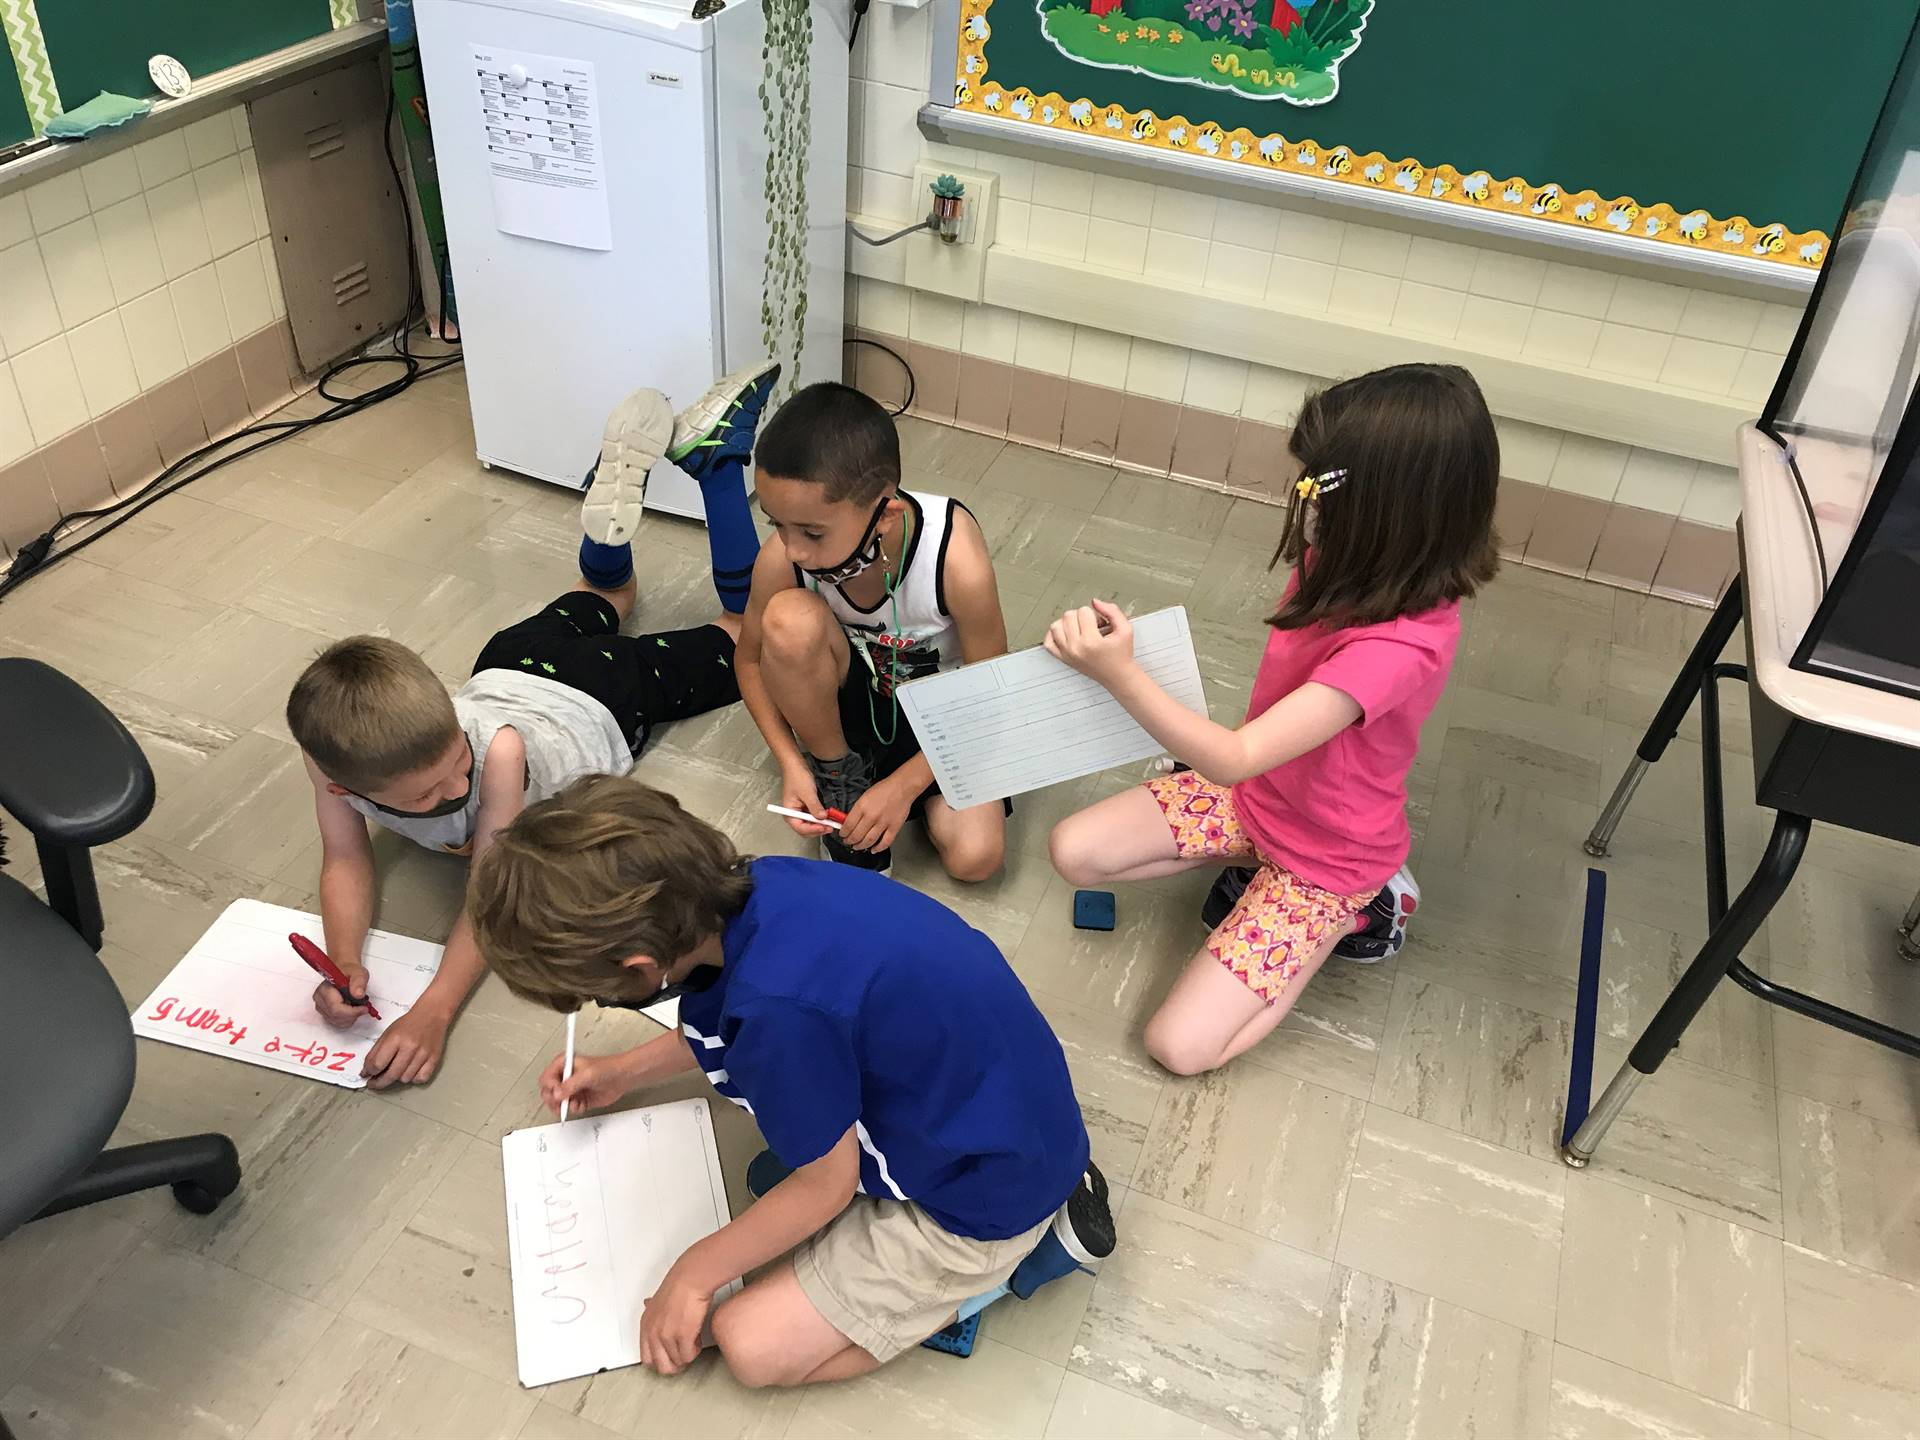 Covid hasn't stopped Mrs. Roth and 1B from learning together